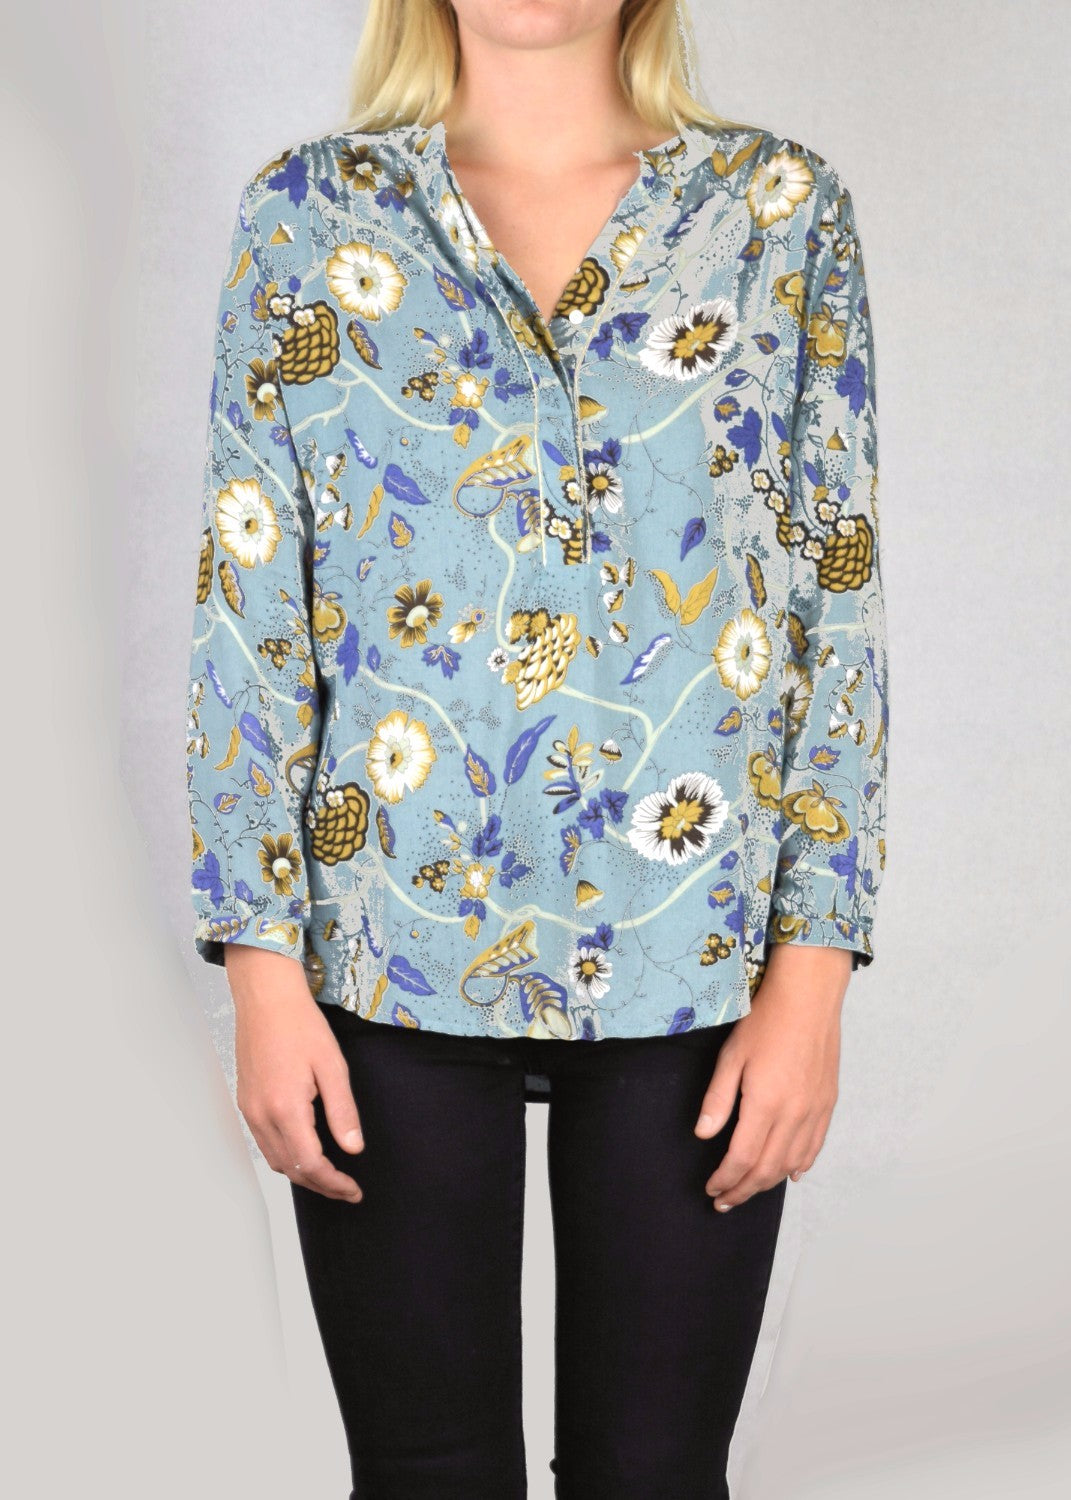 PHILA- Winter Floral Shirt - SOLD OUT